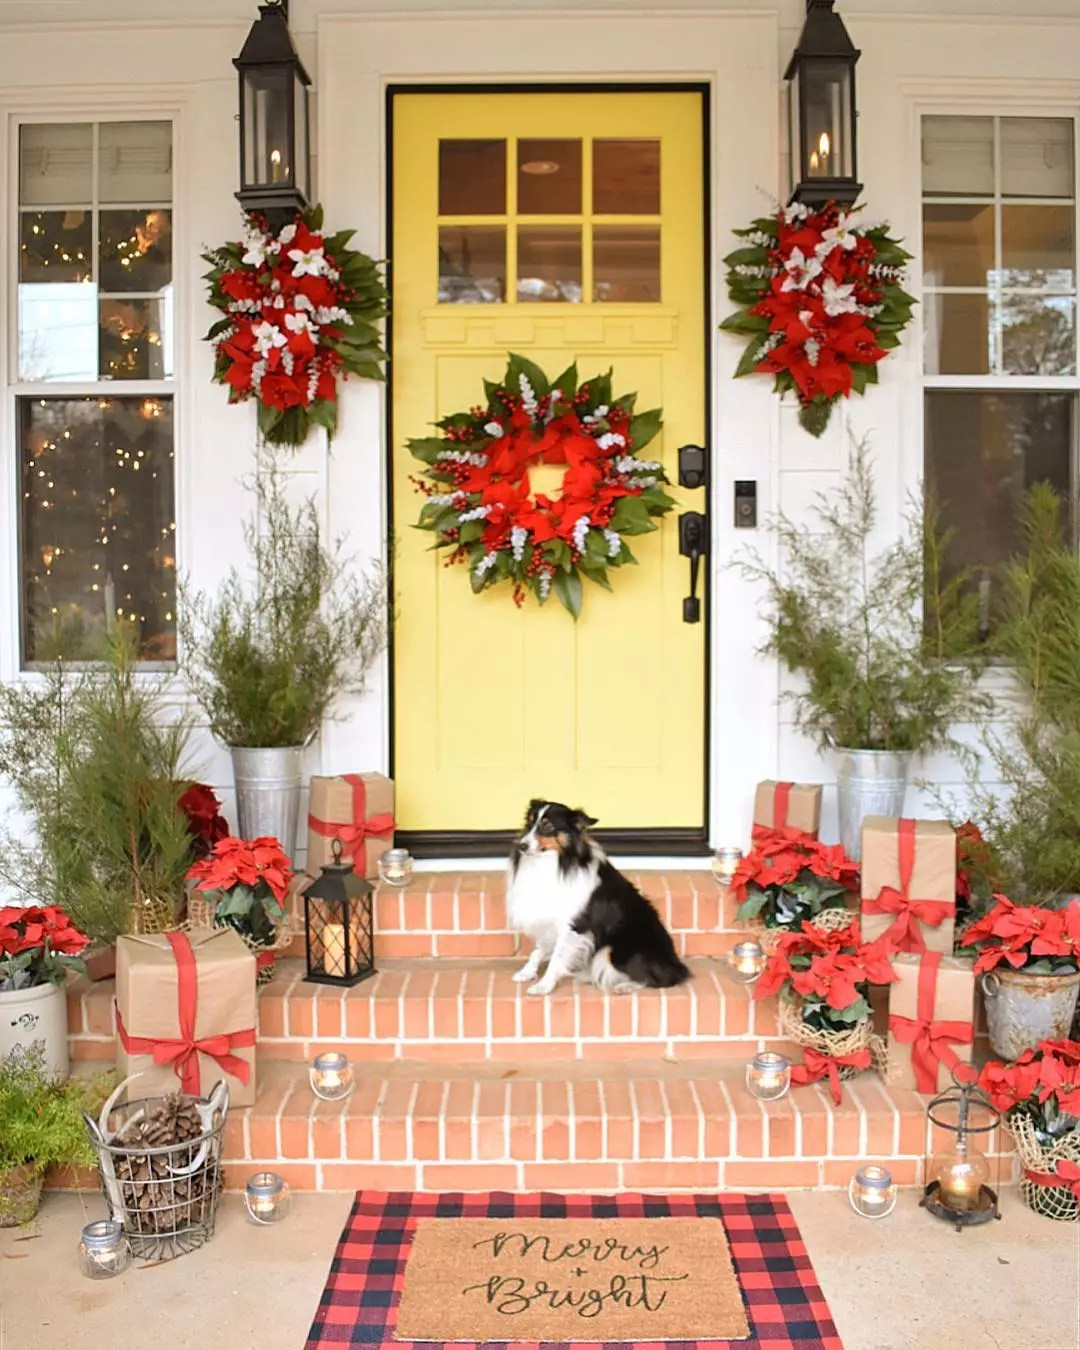 Yellow front door features a poinsetta and pine wreath, and two additional poinsettia wreathes hang from porch lanterns on either side of the door. A dog is sitting on the steps between various other planters with pine- and holiday-related decorations. Photo by Instagram user @simplysoutherncottage.